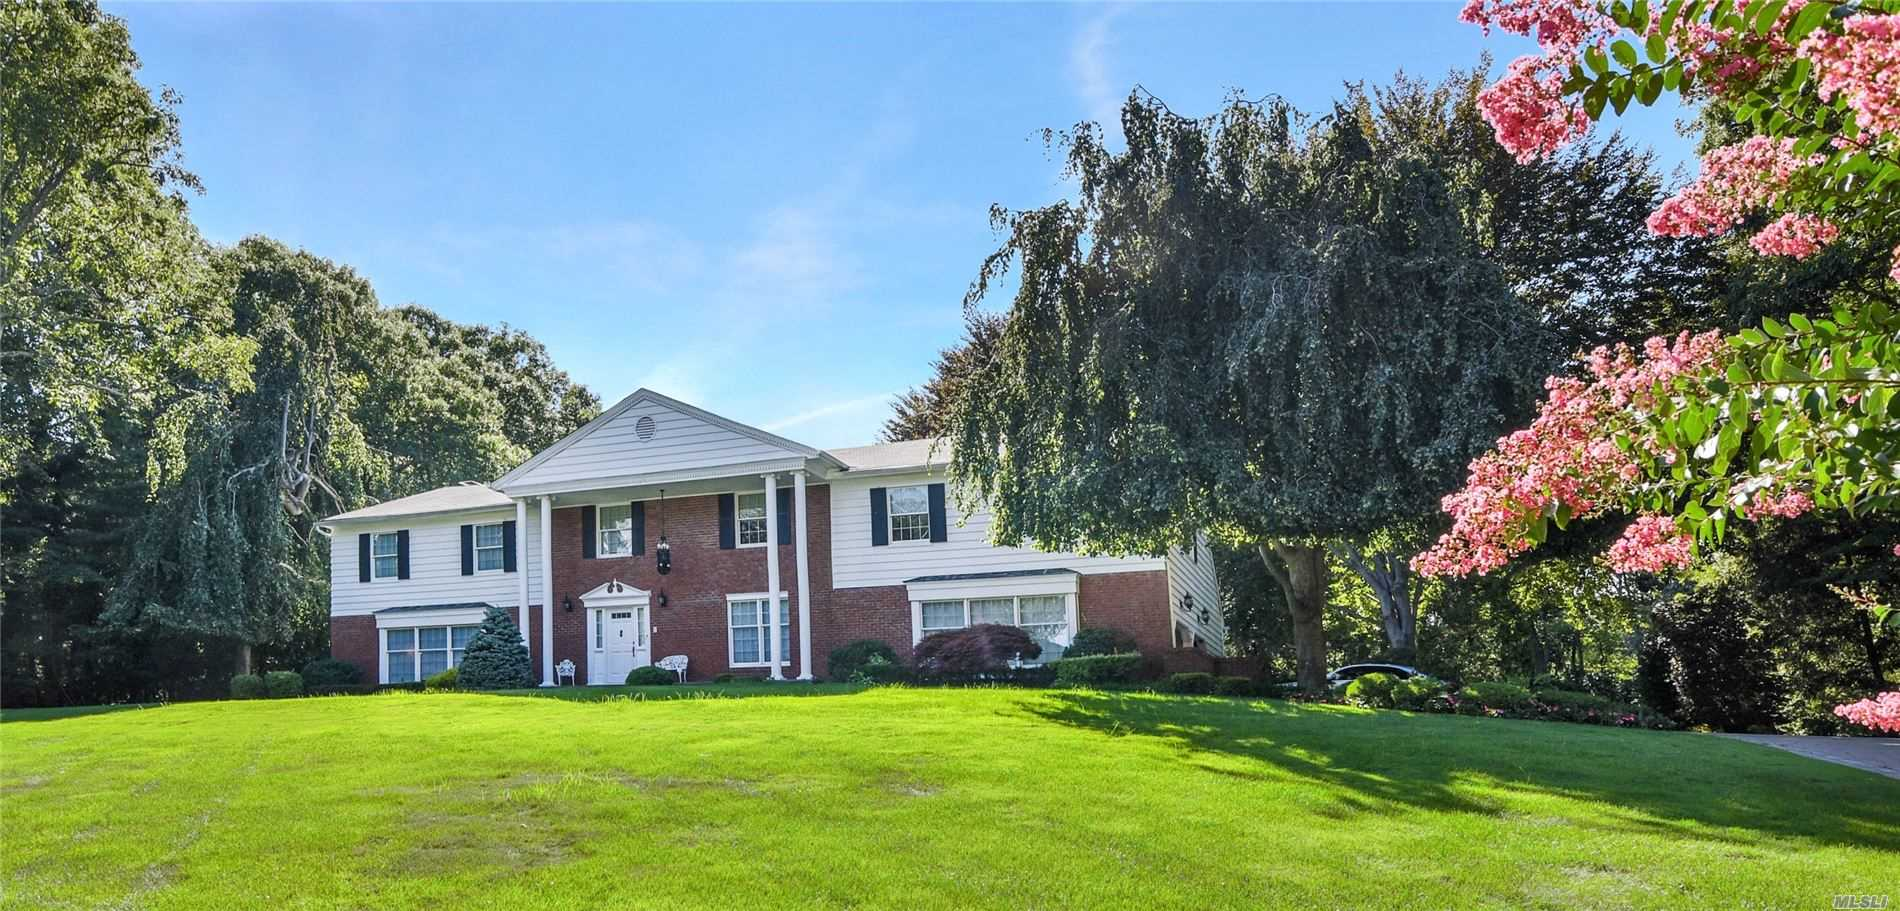 Elegance And Quality Abound , Approx.. 5, 000+ Sq. Ft. Diamond Updated Georgetown Colonial. Spacious 9 Room Home Features 4 Bedrooms, 4.5 Baths With Enclosed Sun Room Heated,  Cac And Sky Lights. Professionally Landscaped Grounds, 24 X 40 Heated Salt Water Gunite Pool, Approx. 1.3 Acres Of Privacy.